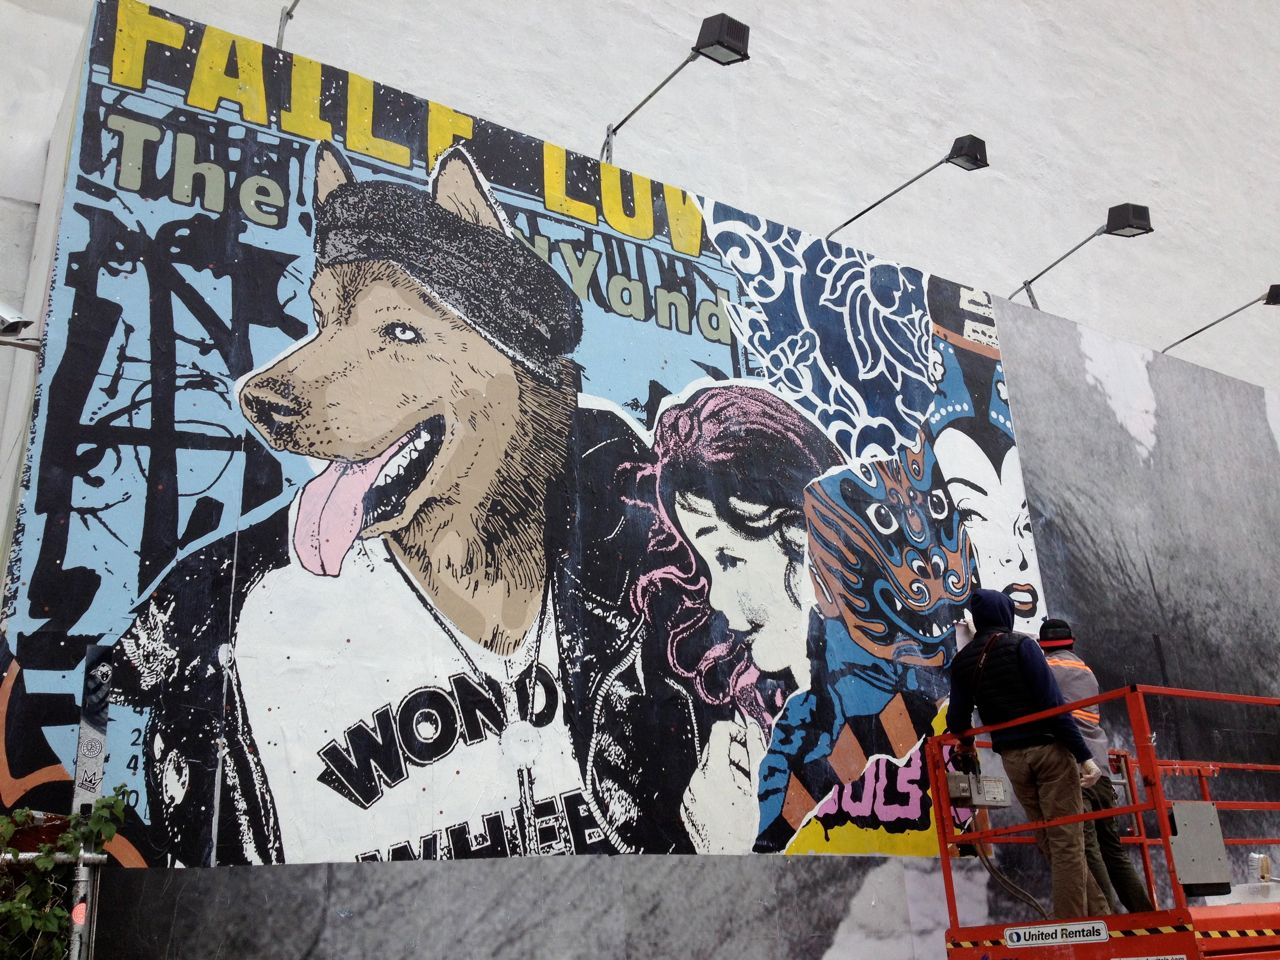 Faile Houston Bowery AM 4